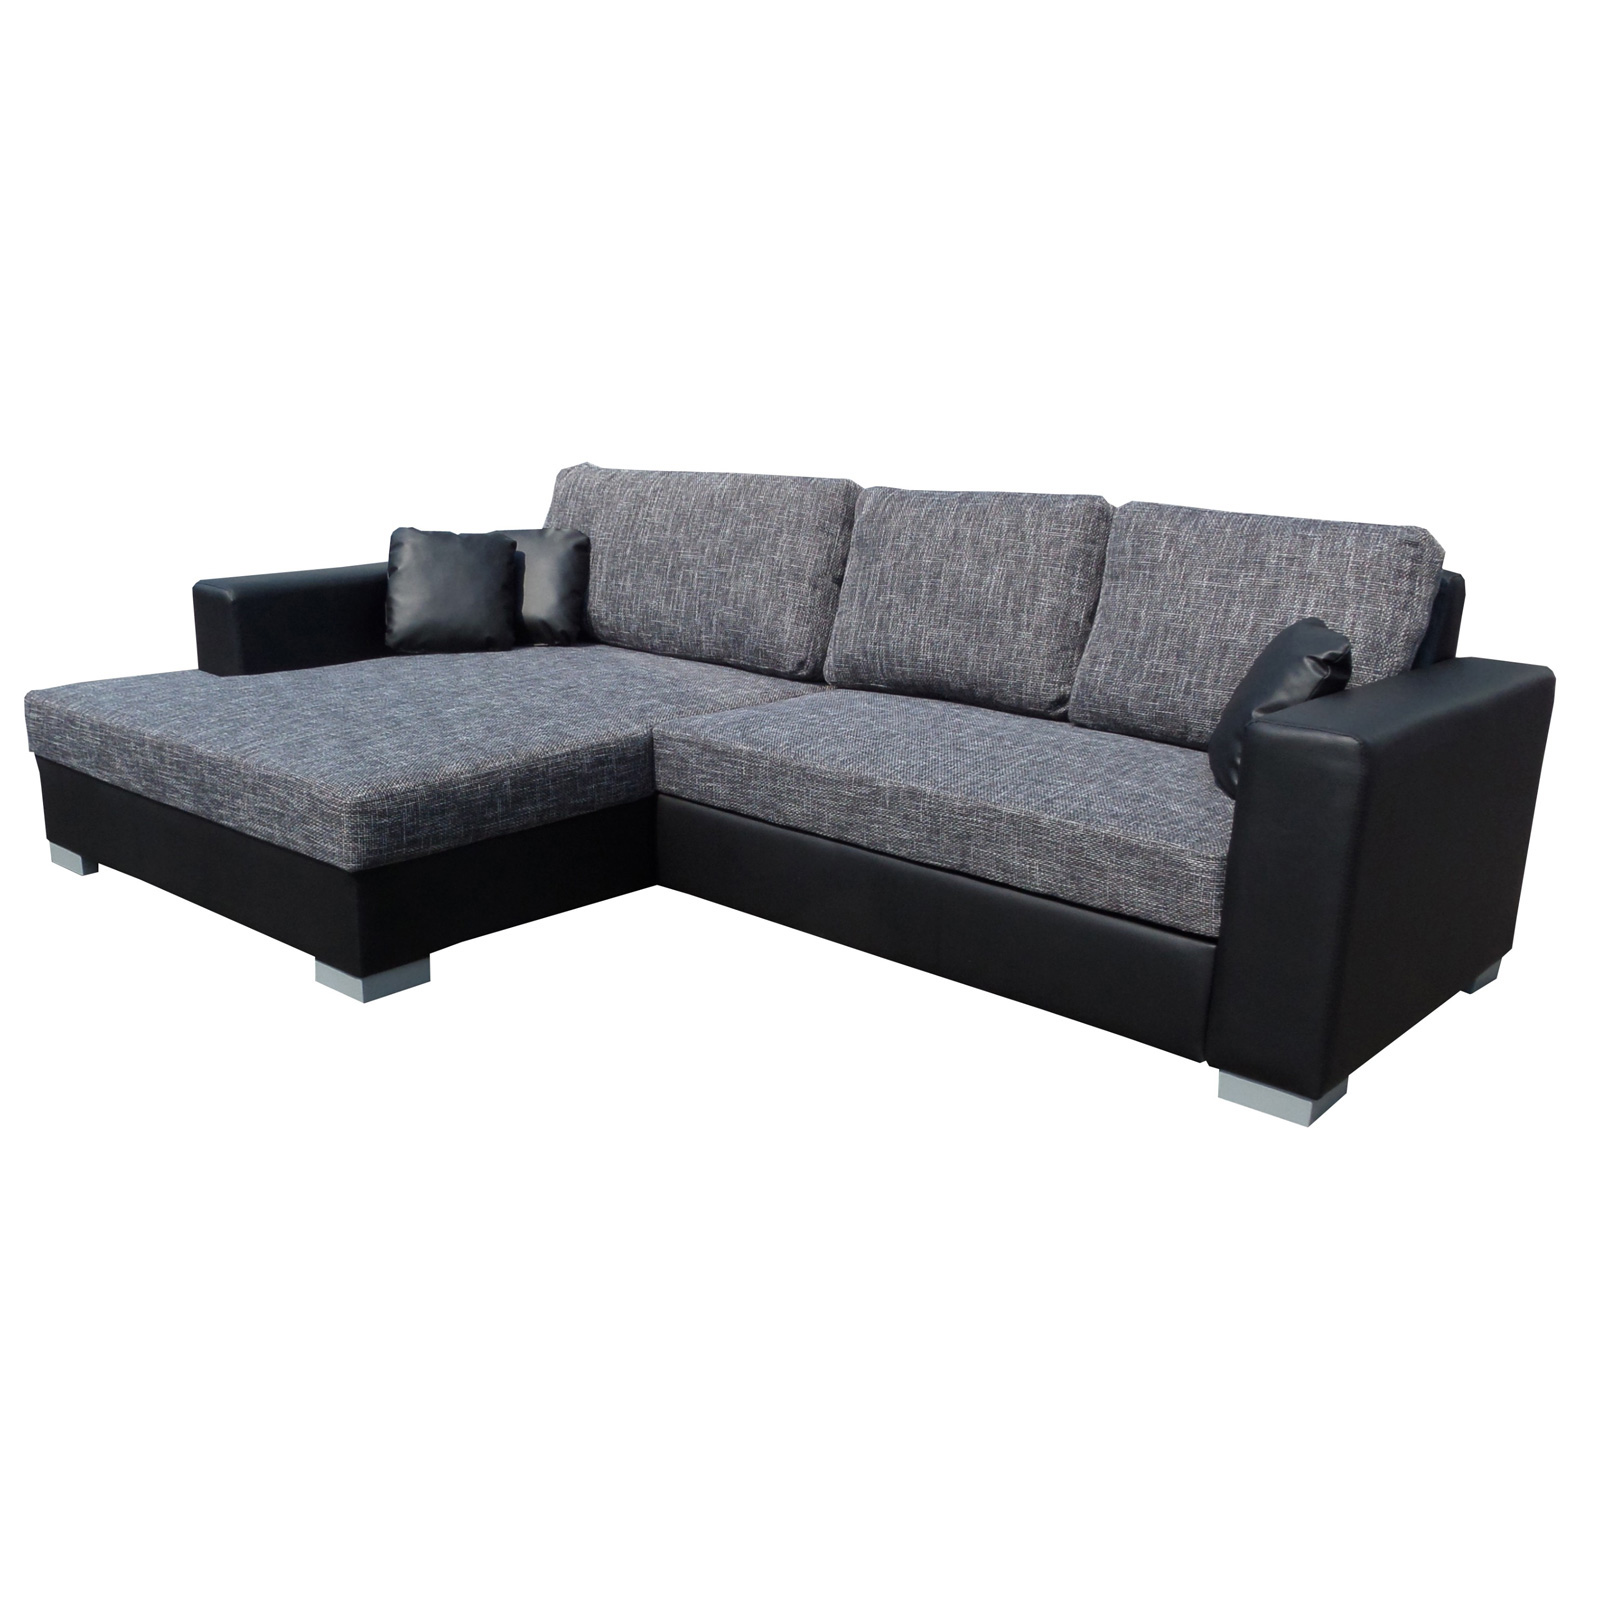 ecksofa flamenco couch mit schlaffunktion lederlook schwarz grau ottomane links ebay. Black Bedroom Furniture Sets. Home Design Ideas